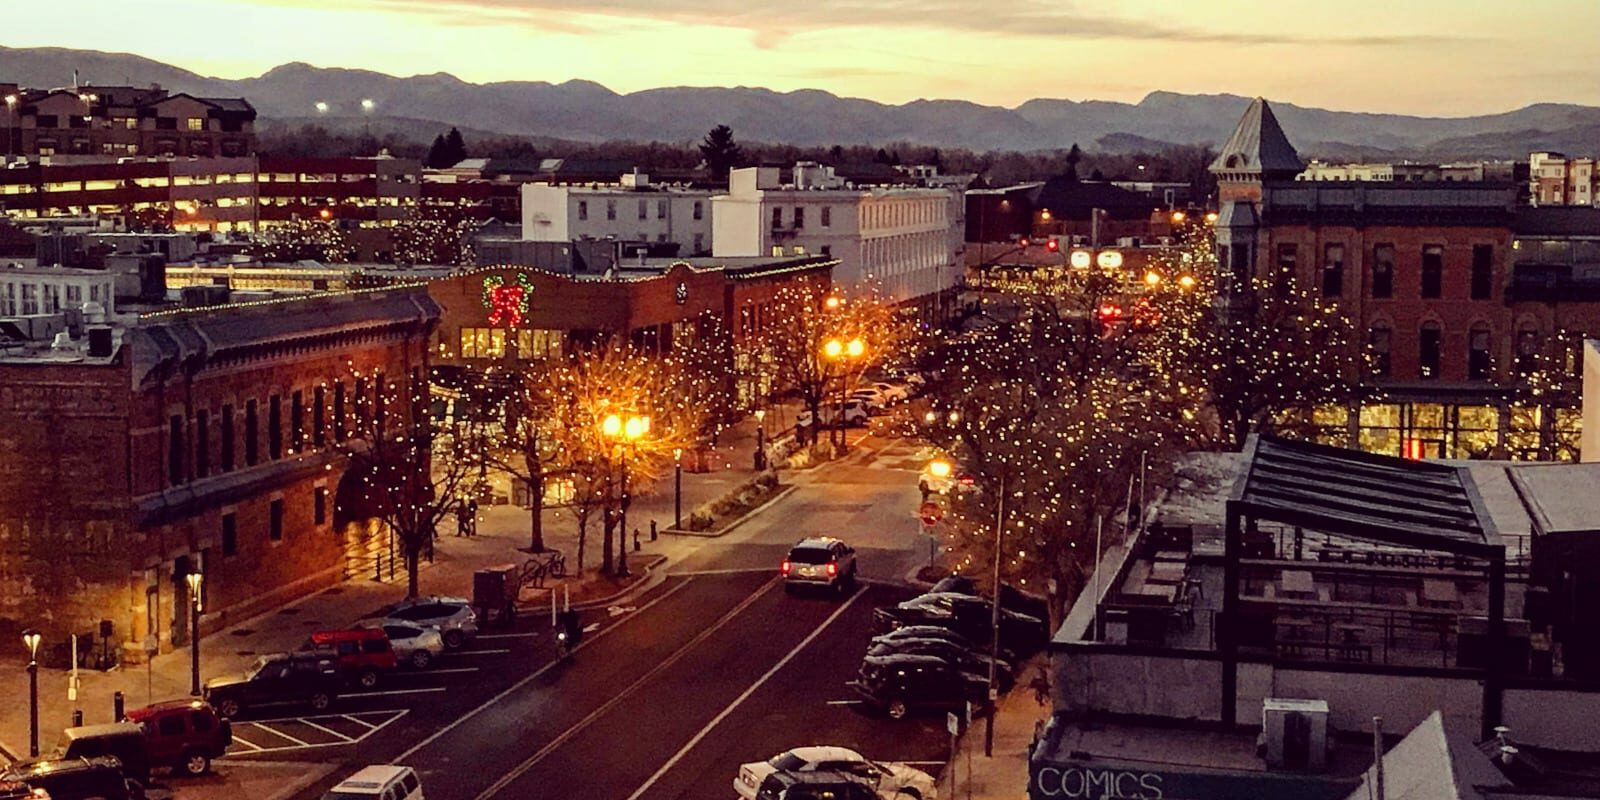 Beat Hotels in Fort Collins Colorado